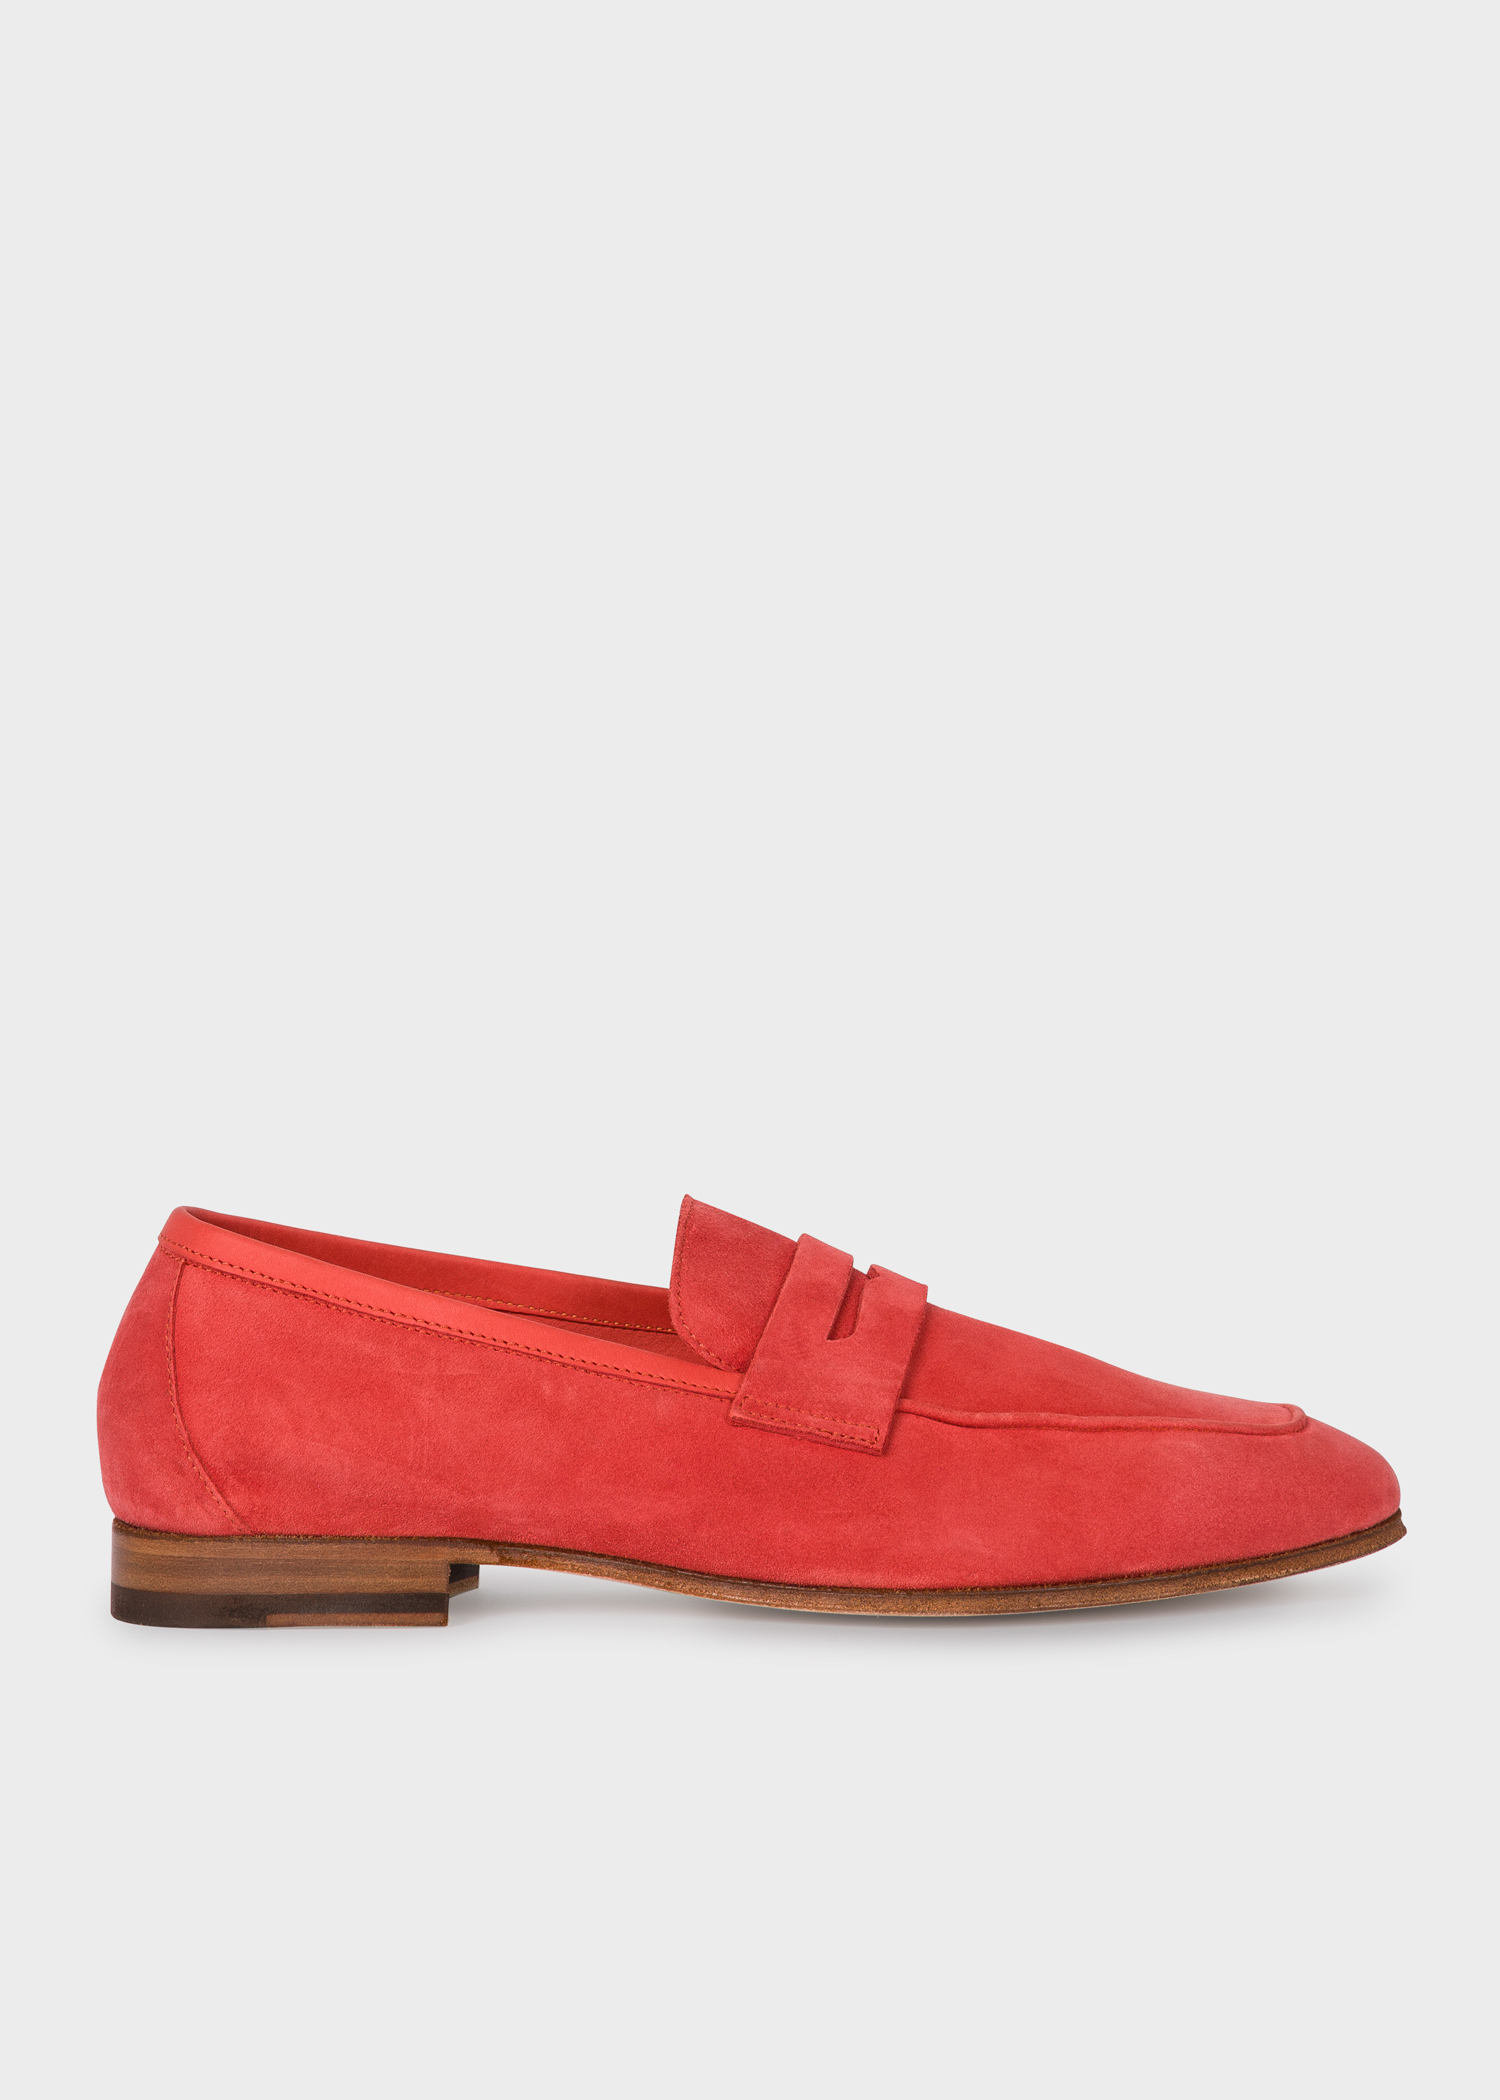 b1fd23976baa Side view - Women's Coral Suede Leather 'Glynn' Penny Loafers ...